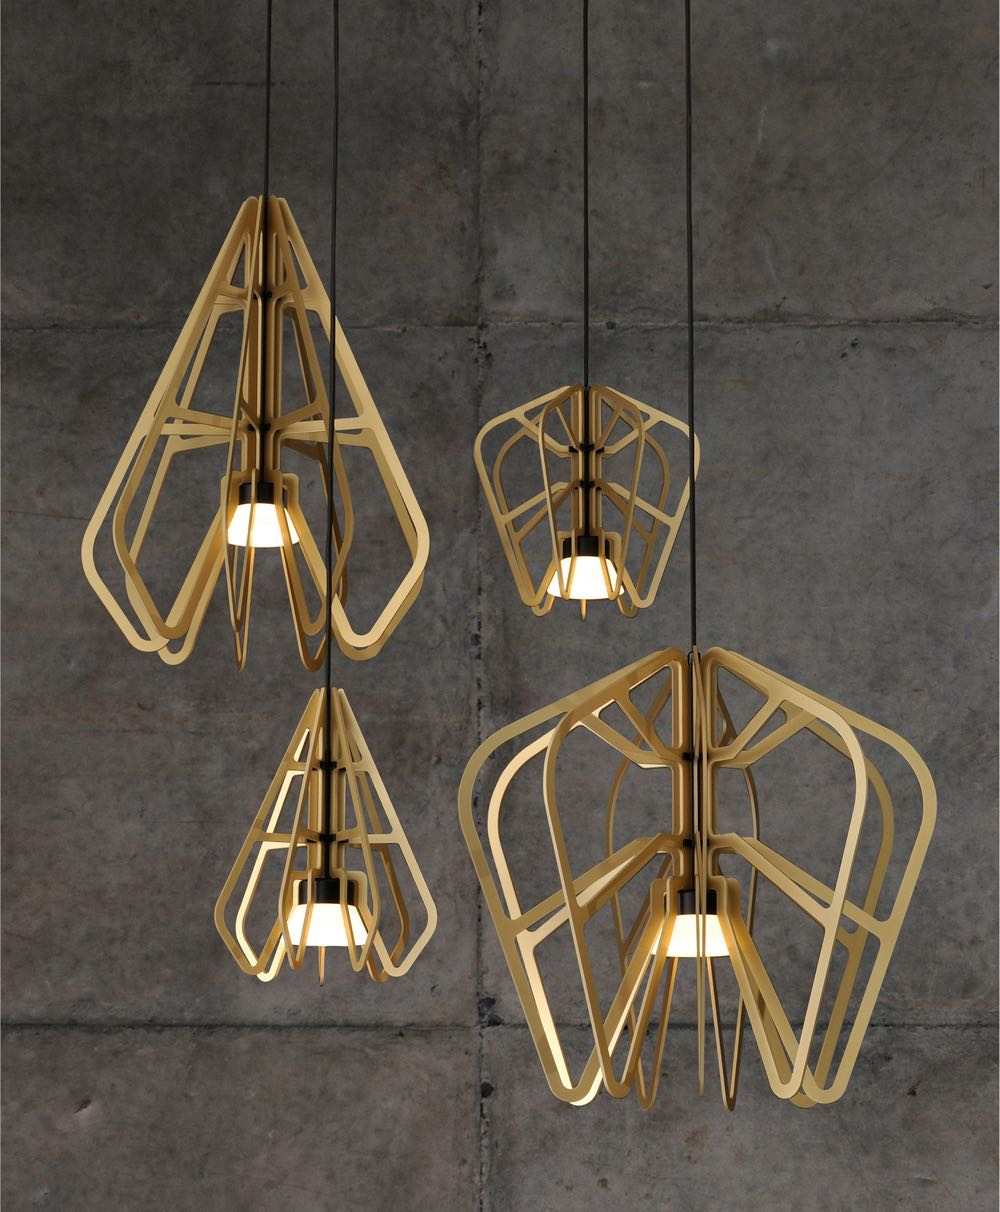 Rowan Turnham and Mathew Harding's 'Exo' lights for Rakumba lighting.